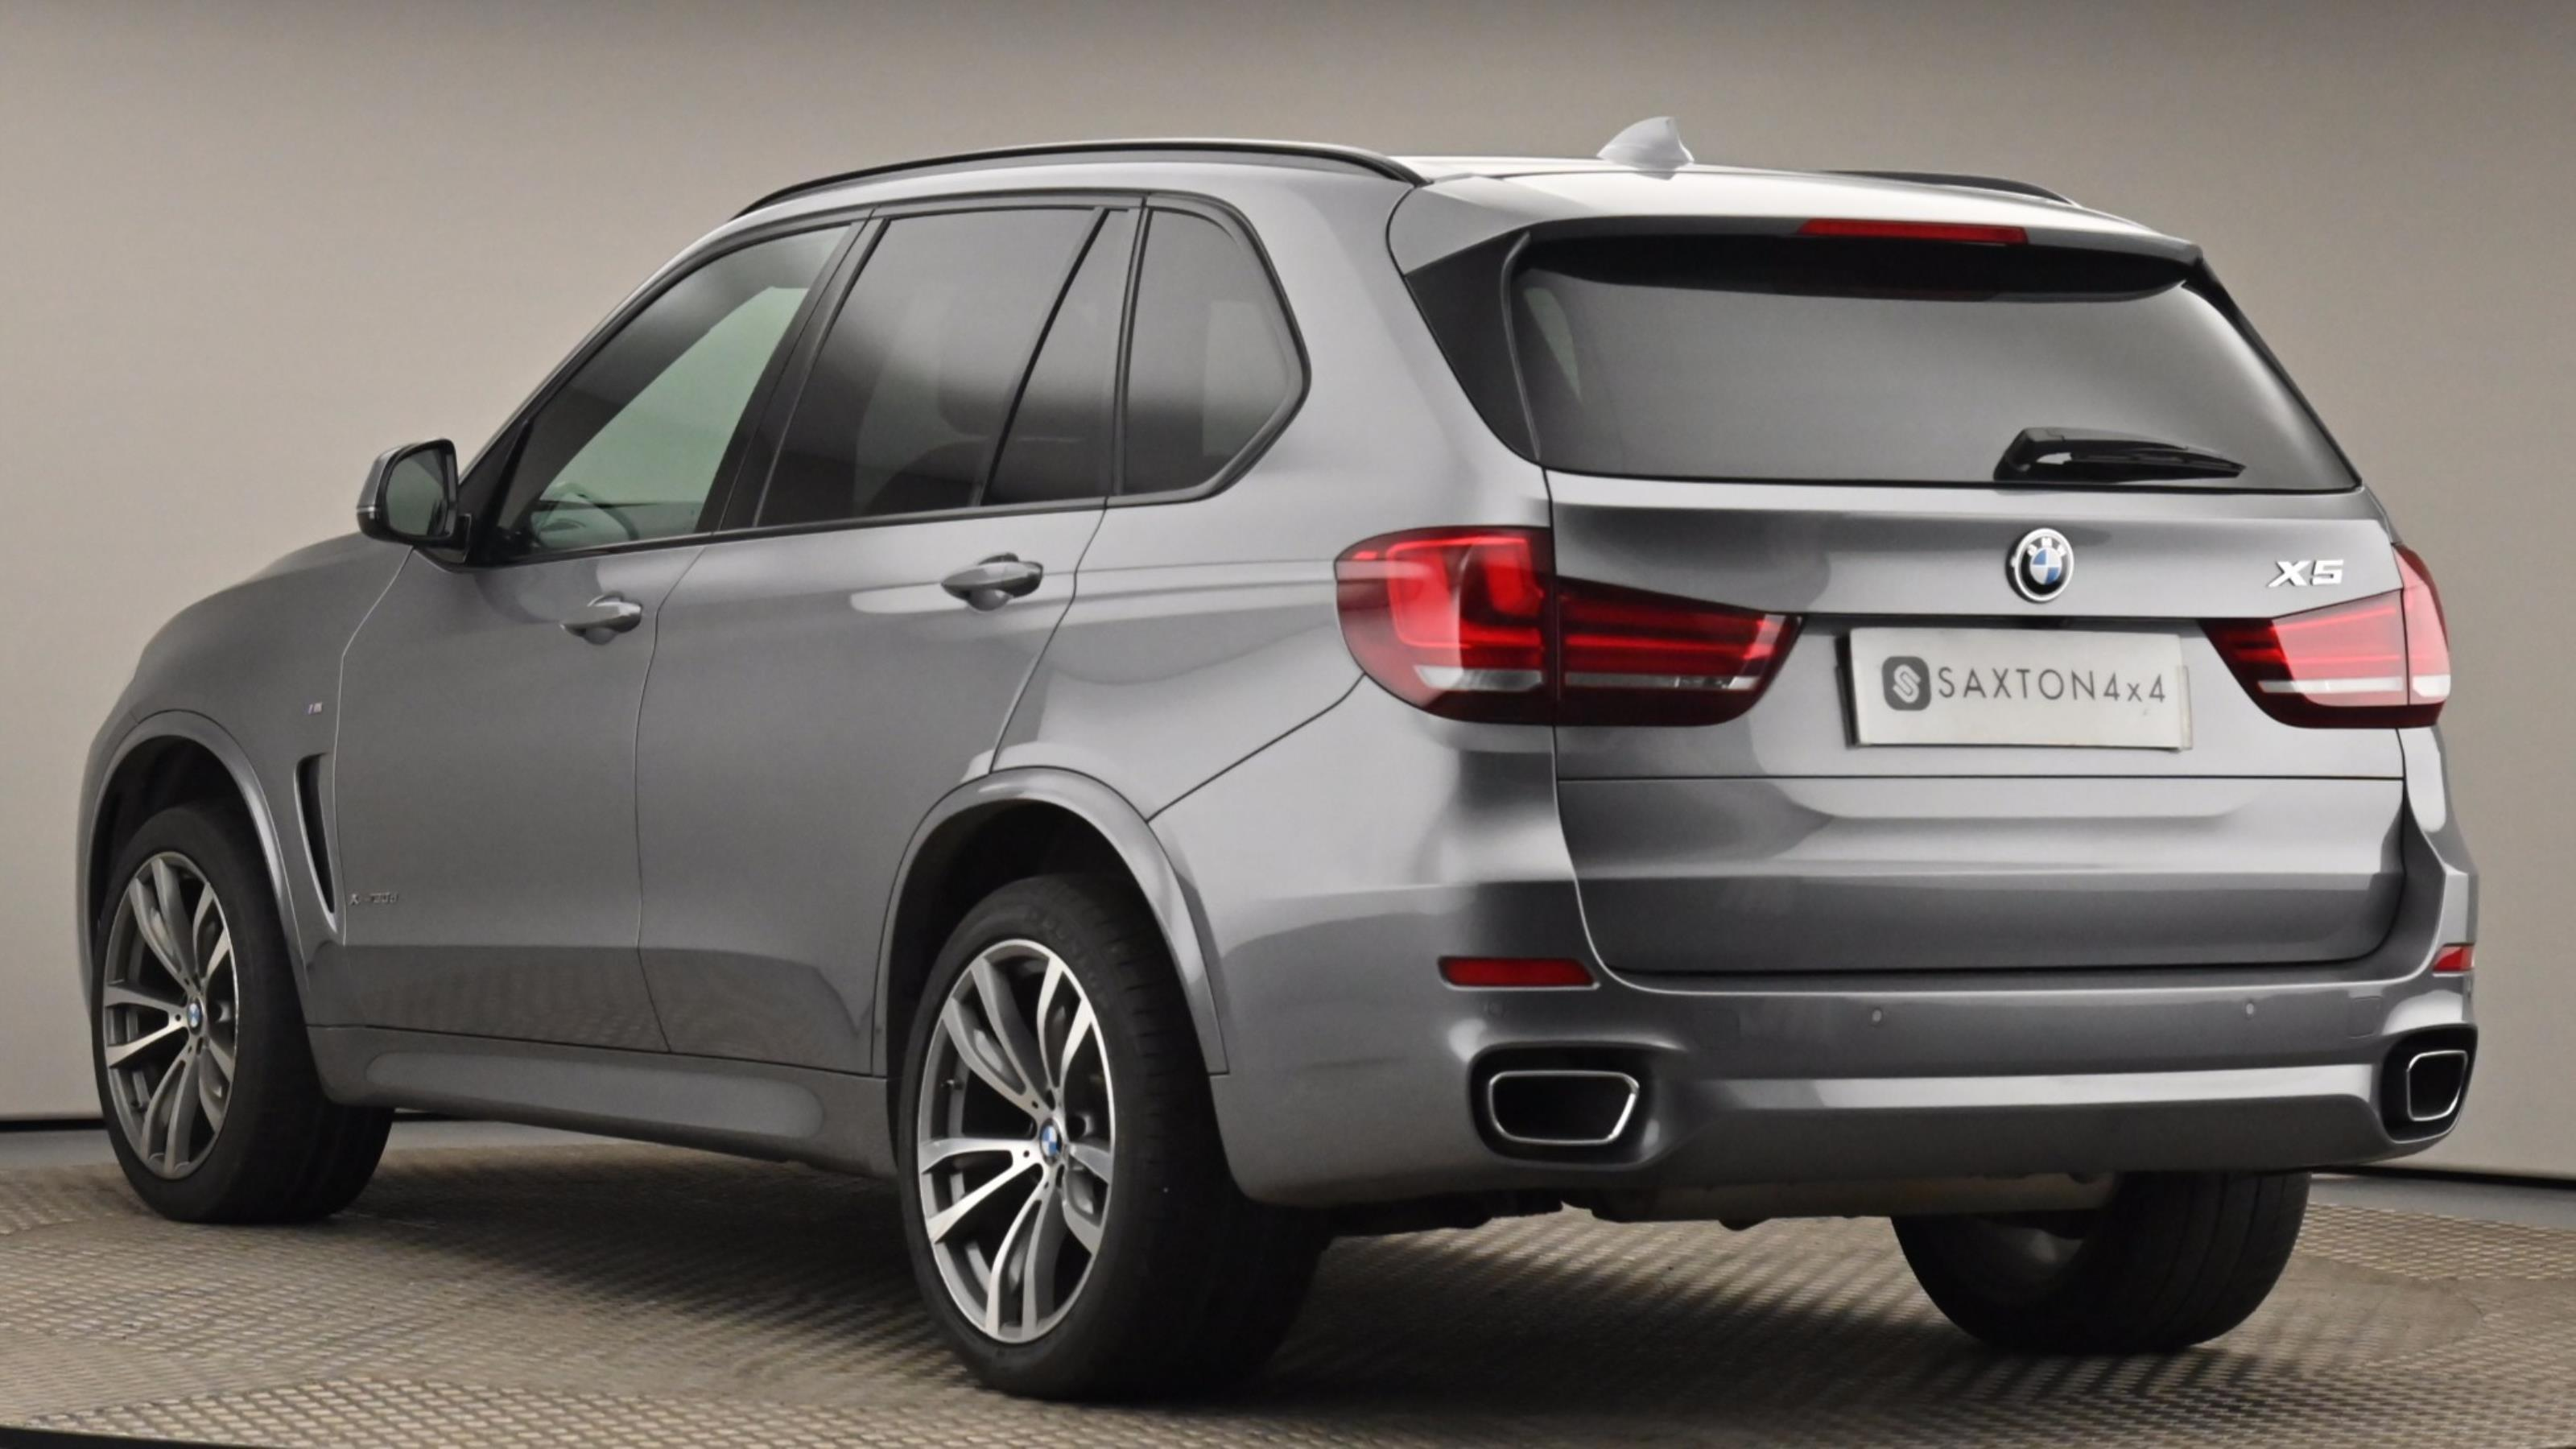 Used 2017 BMW X5 xDrive30d M Sport 5dr Auto [7 Seat] GREY at Saxton4x4